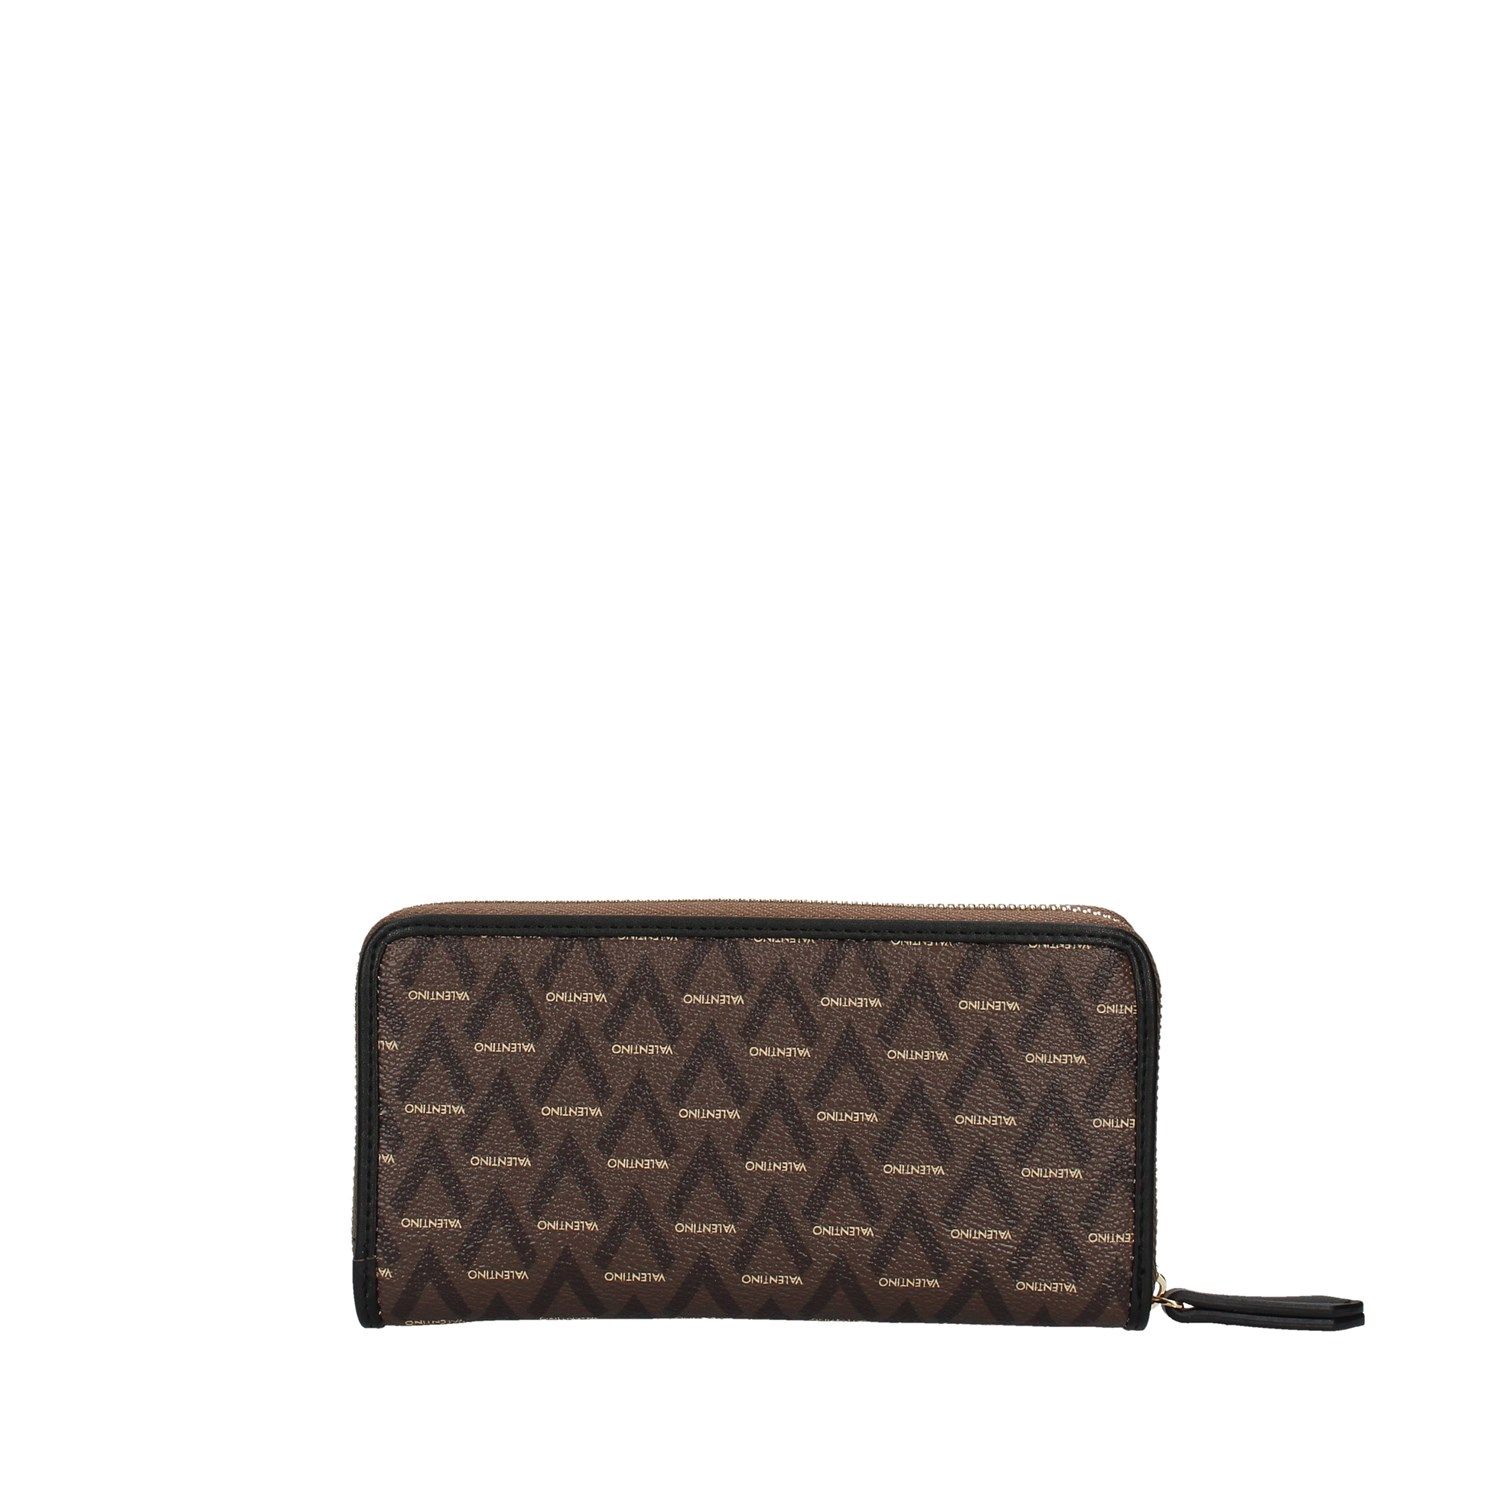 Valentino Bags Accessories Accessories Women's wallets BLACK VPS3KG155